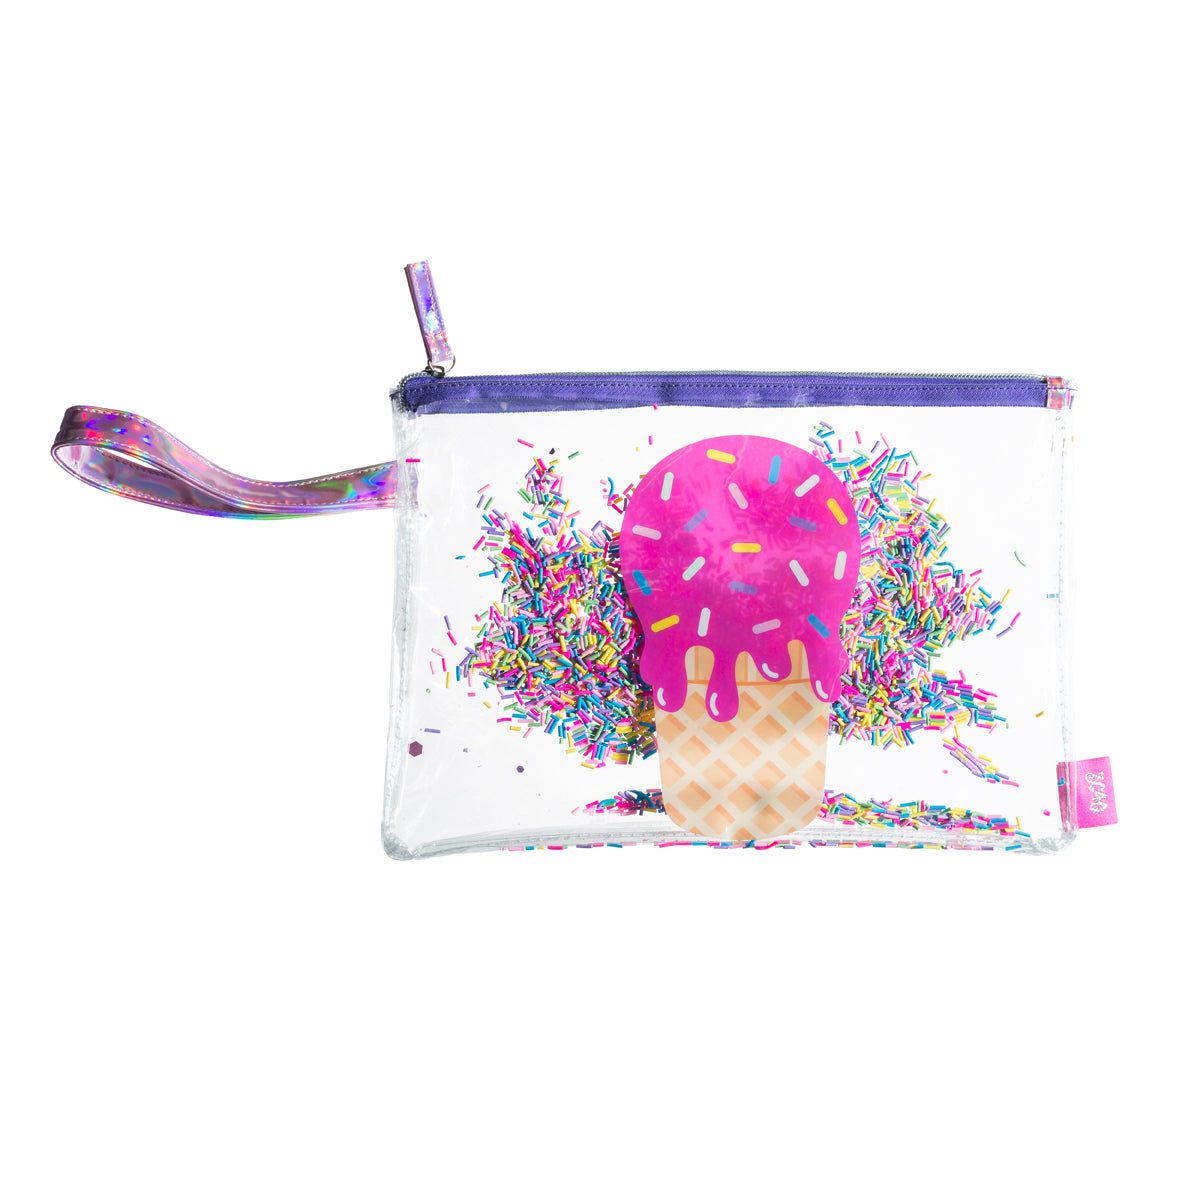 Zippered Bikini Bag Tote – Waterproof Double Layered PVC – Holographic Wrist Strap – Dripping Ice Cream & Sprinkles Design - Bizzy Lizzy